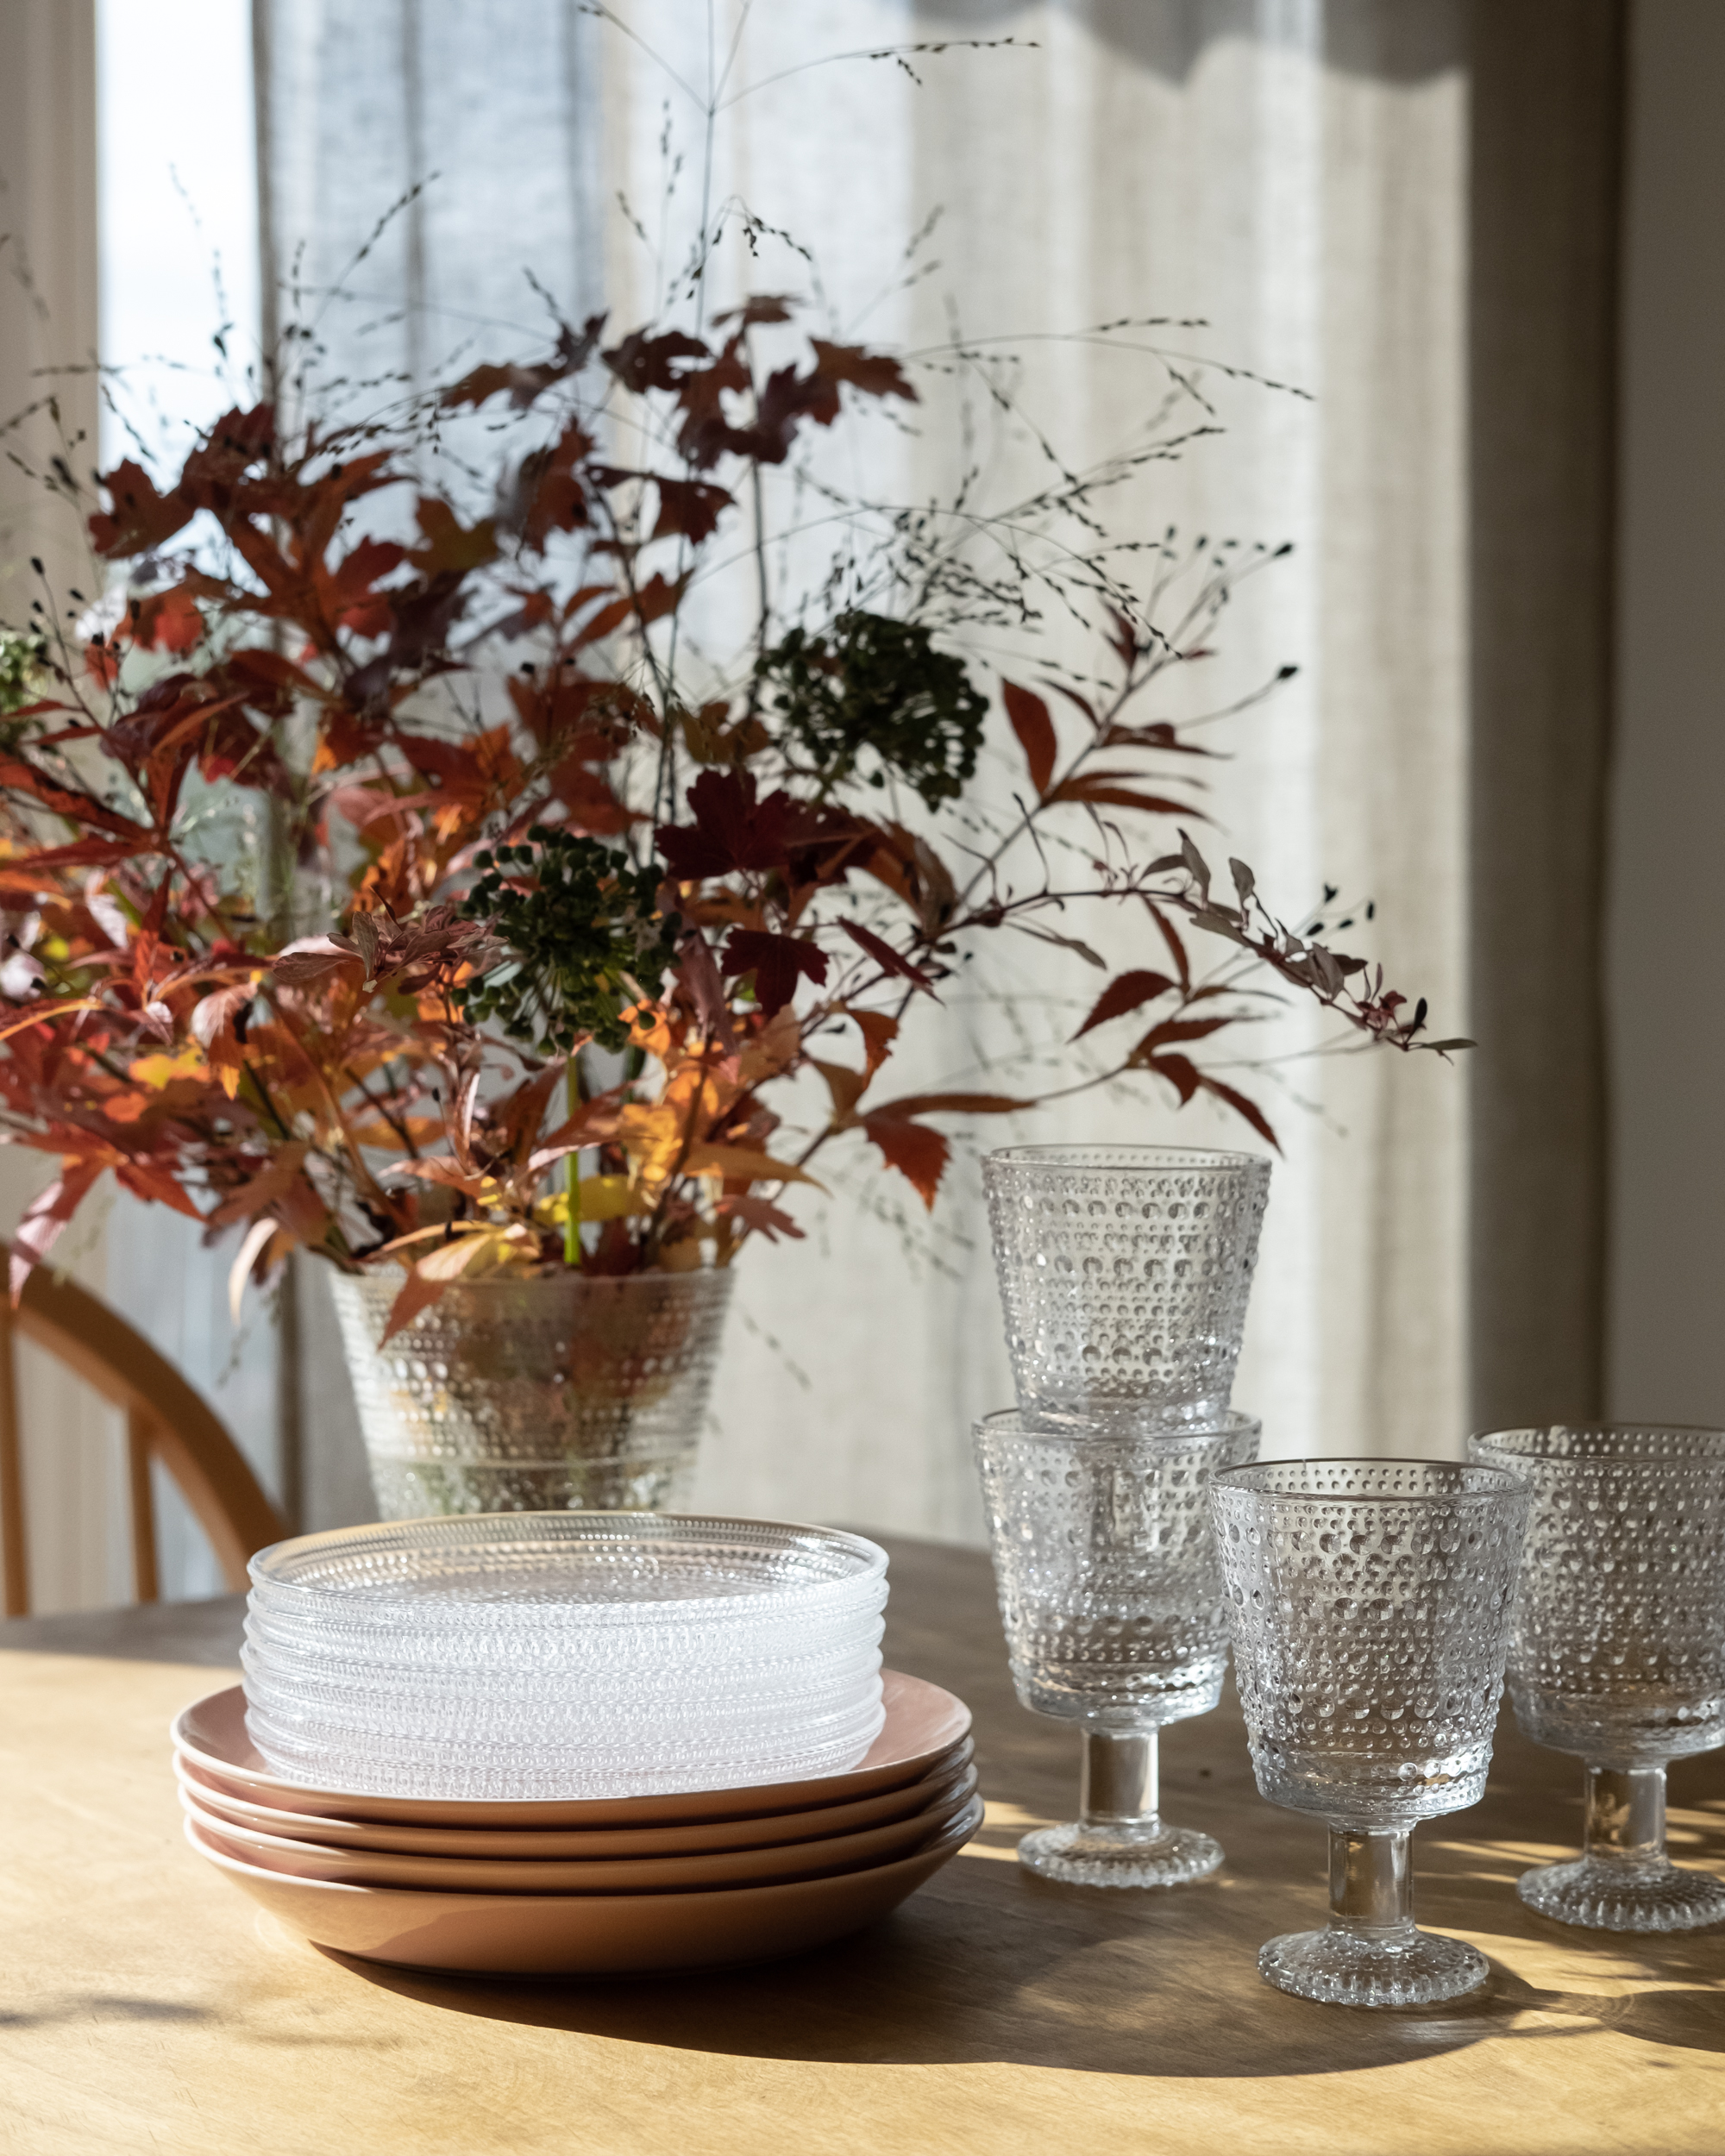 Iittala tableware from Kastehelmi and Teema collection.jpg